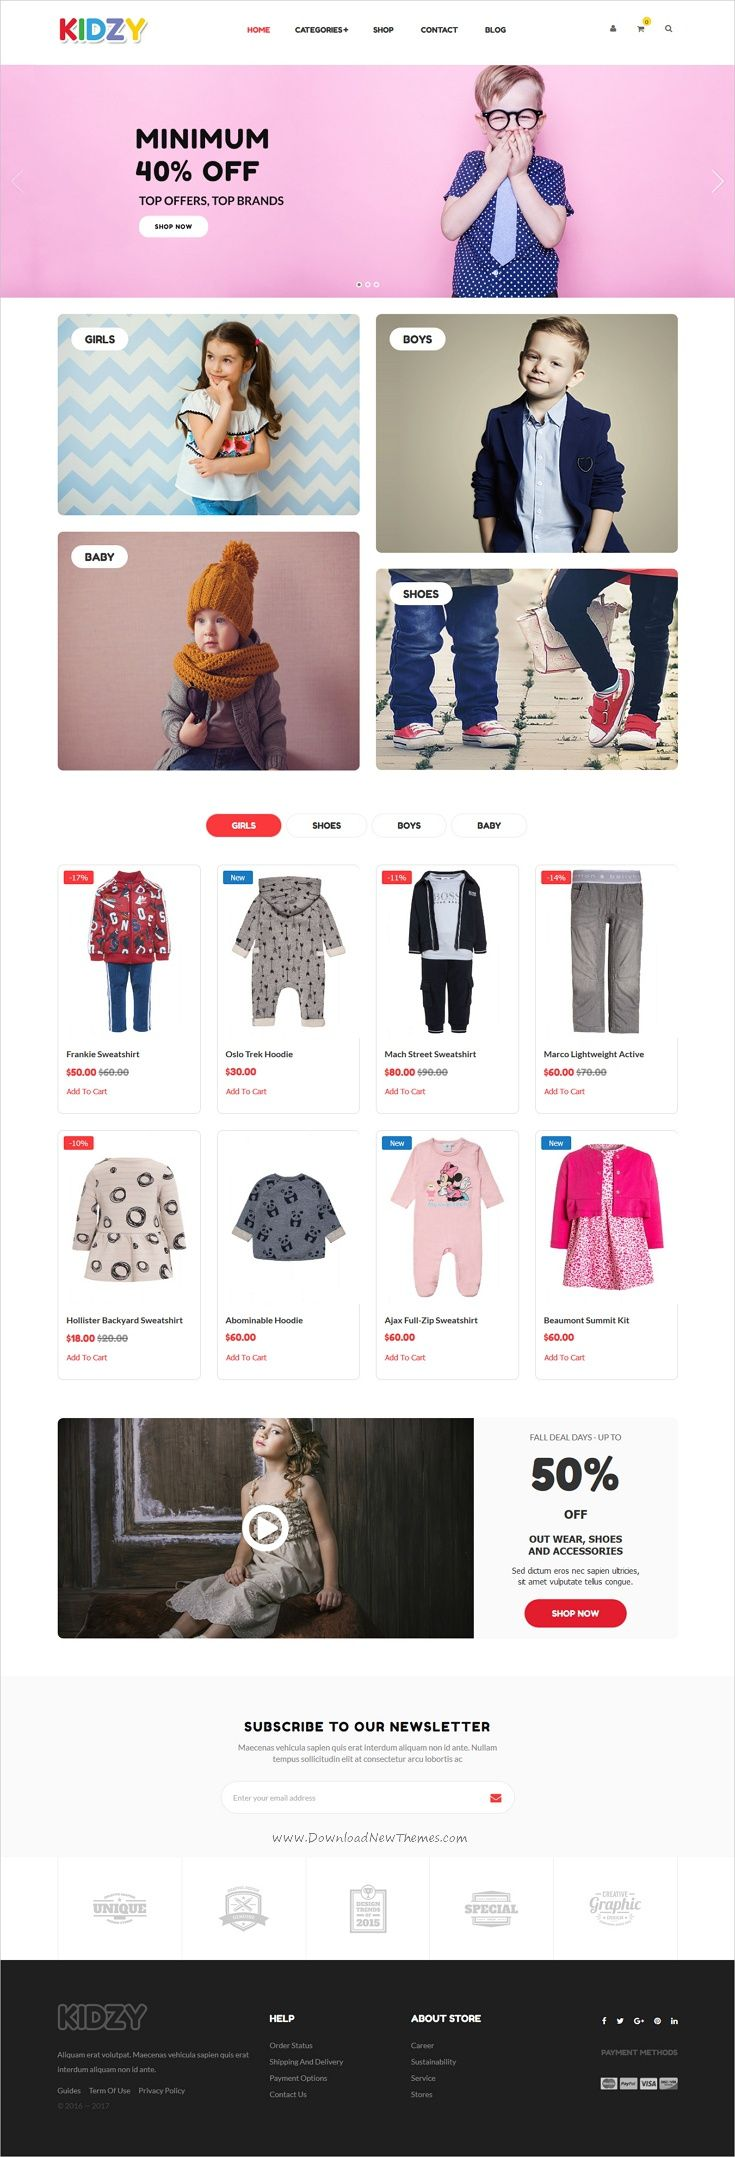 Xshop is stylish and modern design 7in1 responsive #Magento theme for stunning #kids #babyshop #eCommerce website download now..